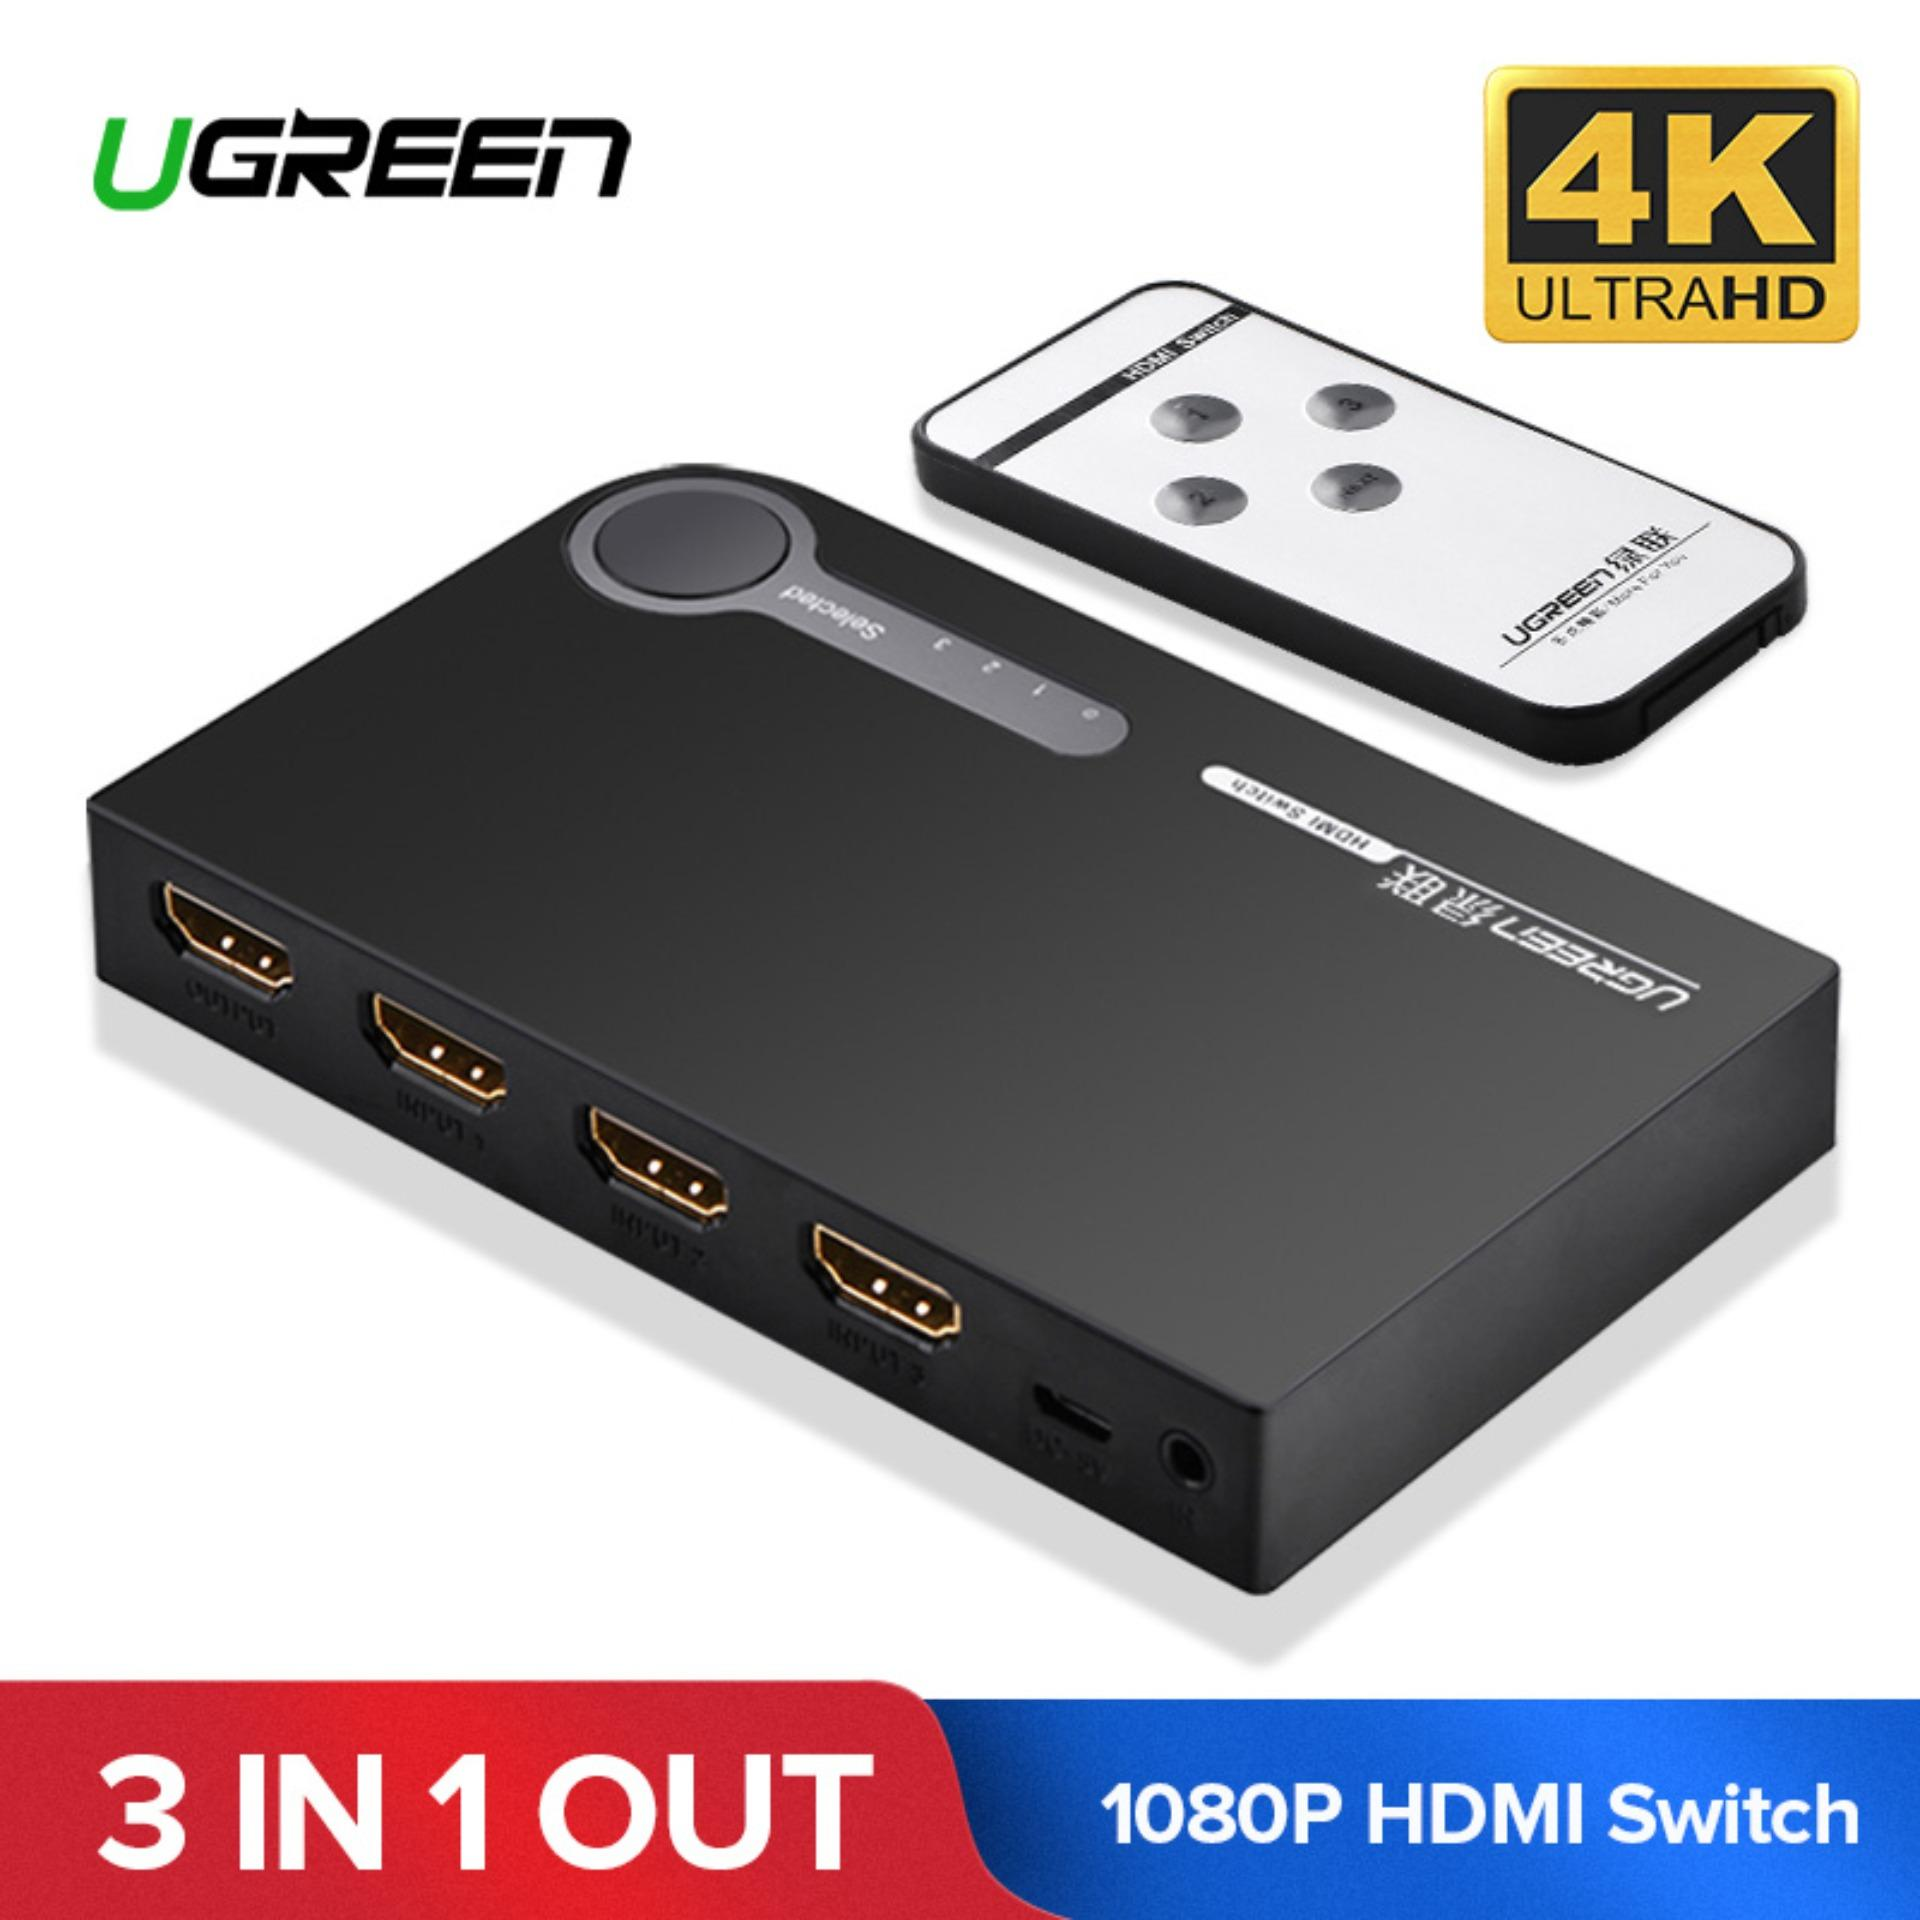 UGREEN HDMI Splitter 3 Port HDMI Switch Switcher HDMI Port 1080P 3 Input 1  Output 4K Adapter with Remote Controller for XBOX 360 PS3 PS4 Android HDTV